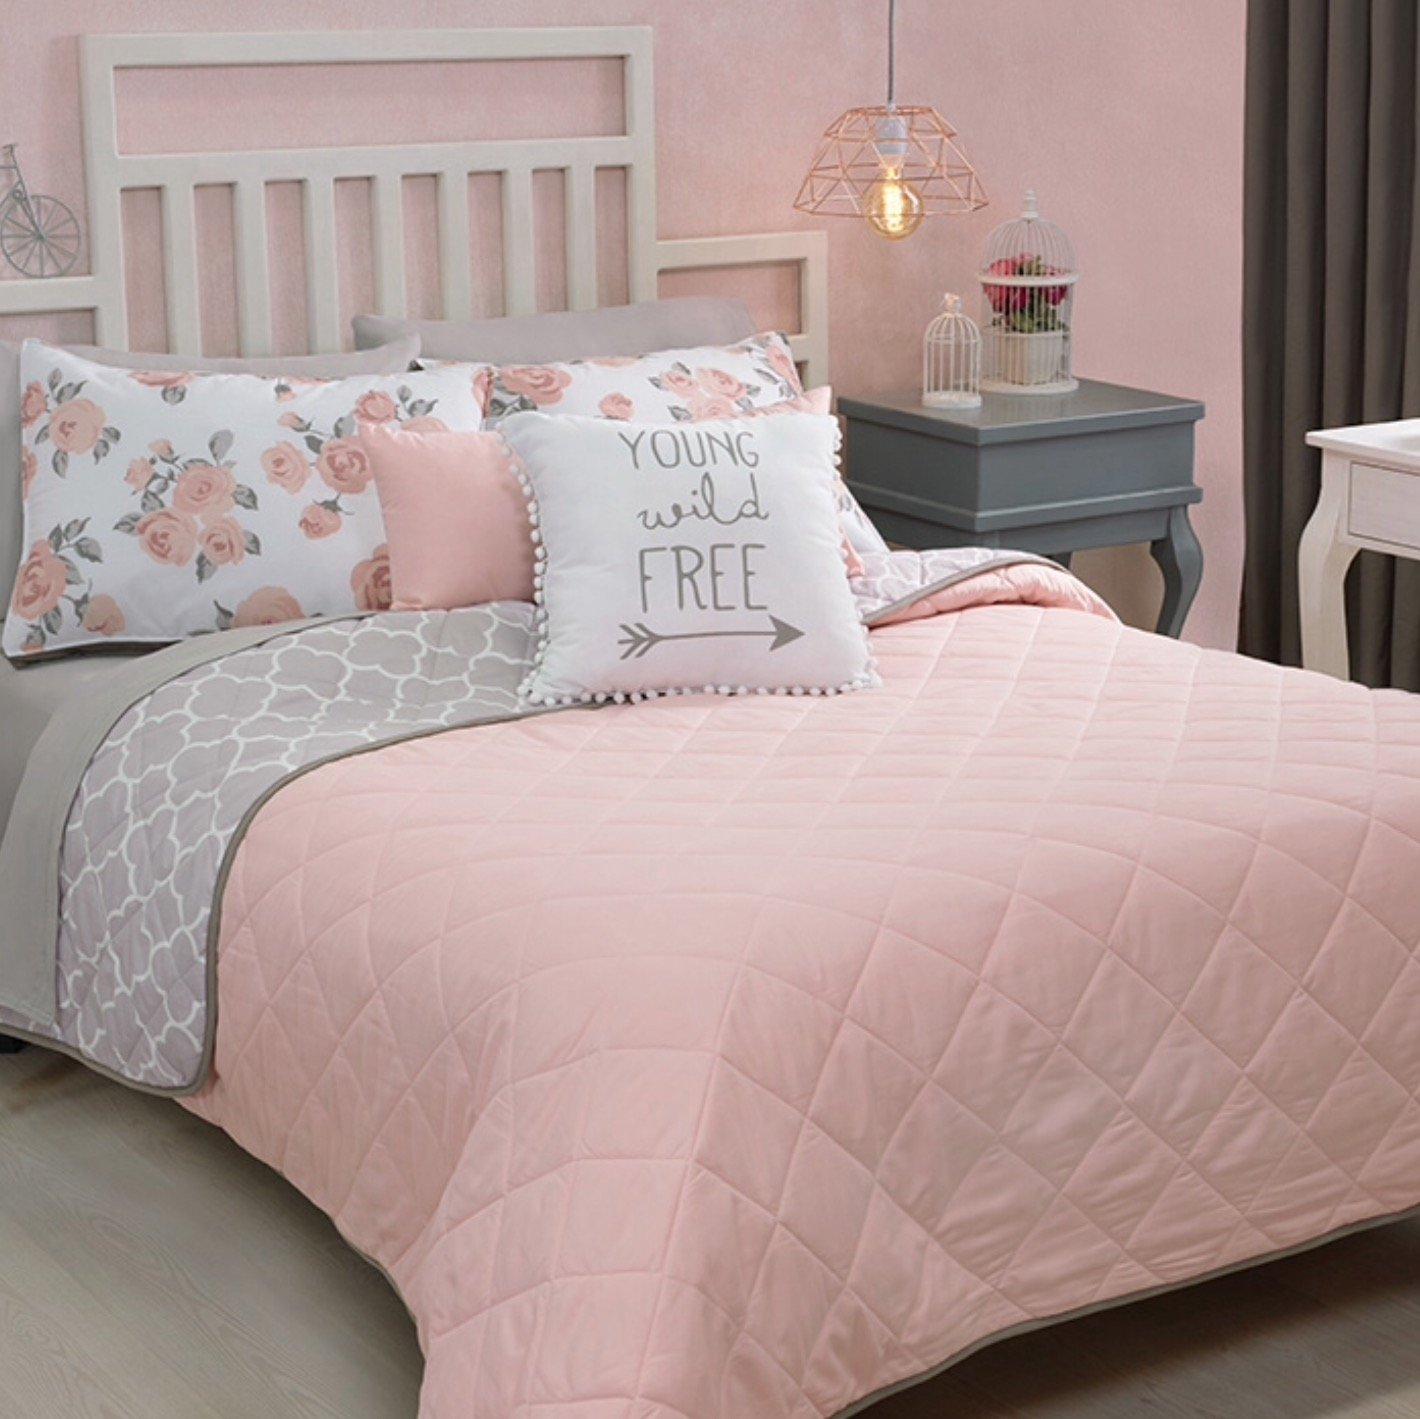 NEW FREE GRAY/PINK TEENS GIRLS REVERSIBLE COMFORTER SET 3 PCS TWIN SIZE by JORGE'S HOME FASHION (Image #2)